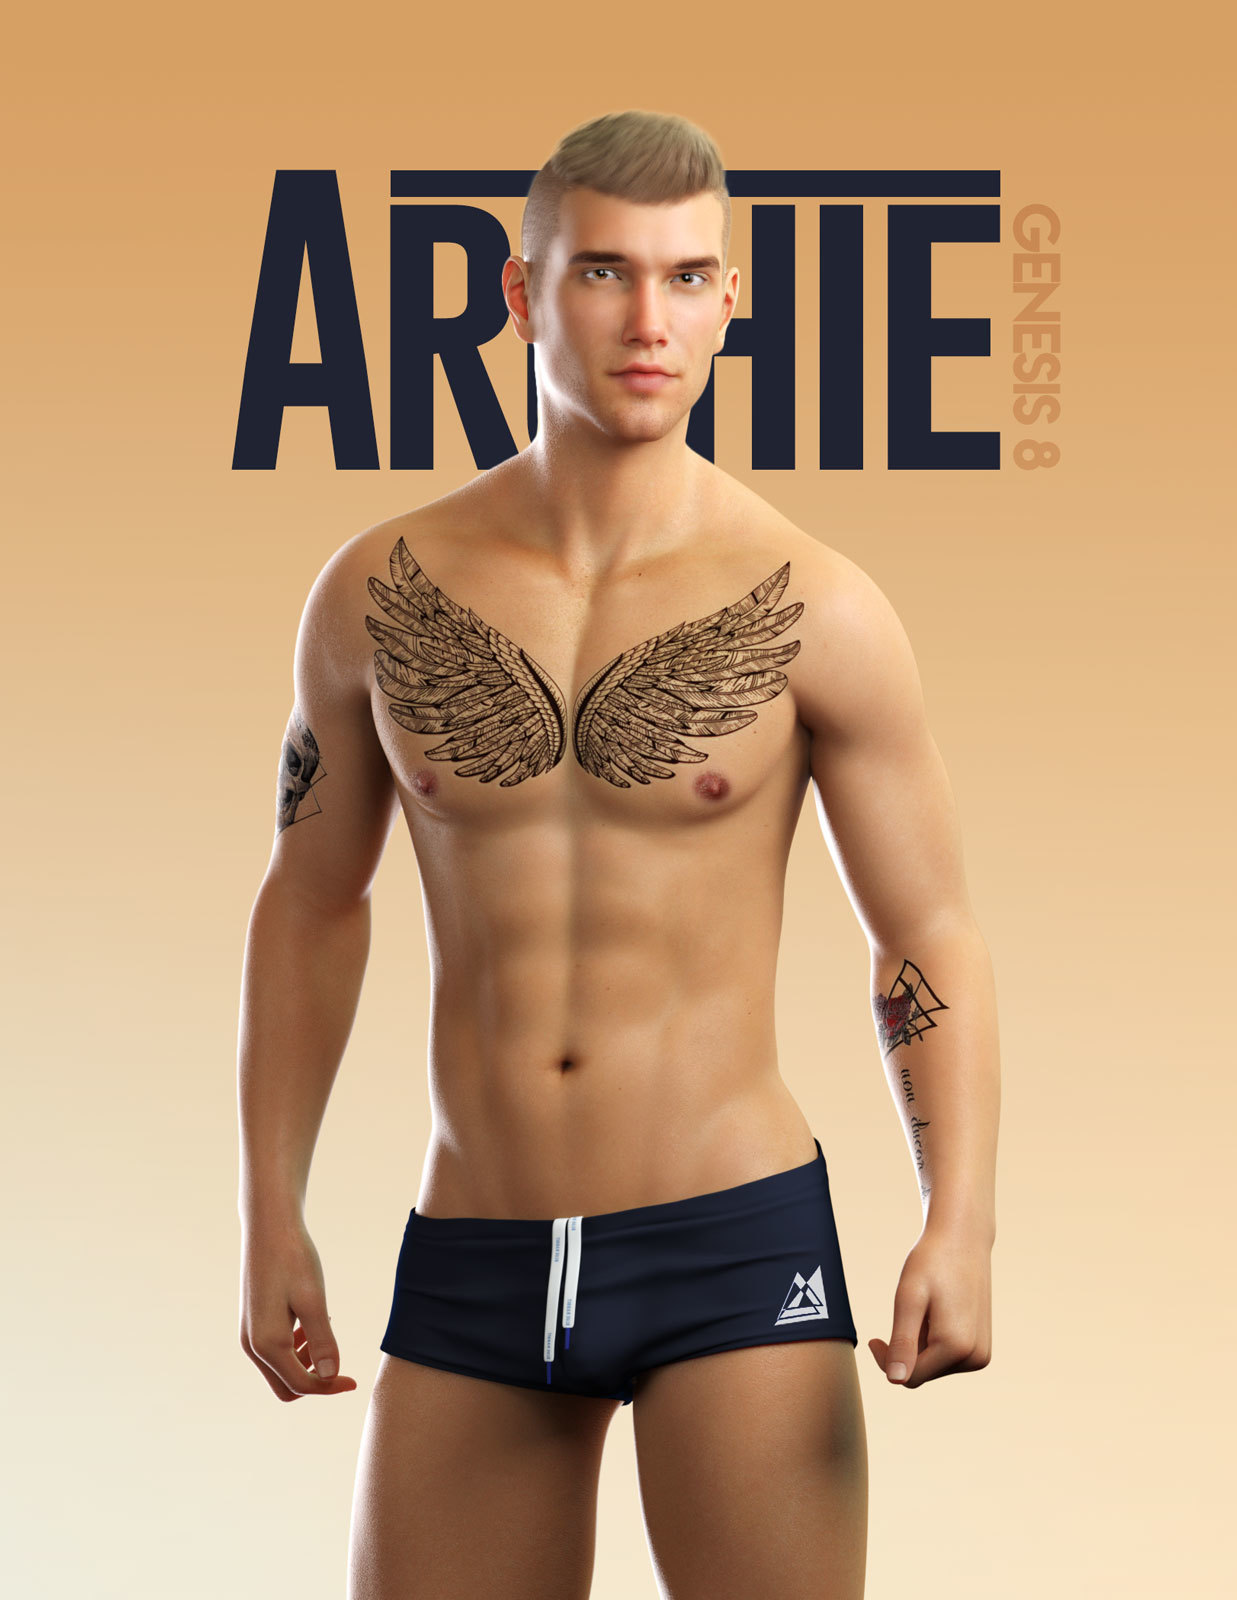 Archie for Genesis 8 Male by sithlordsims